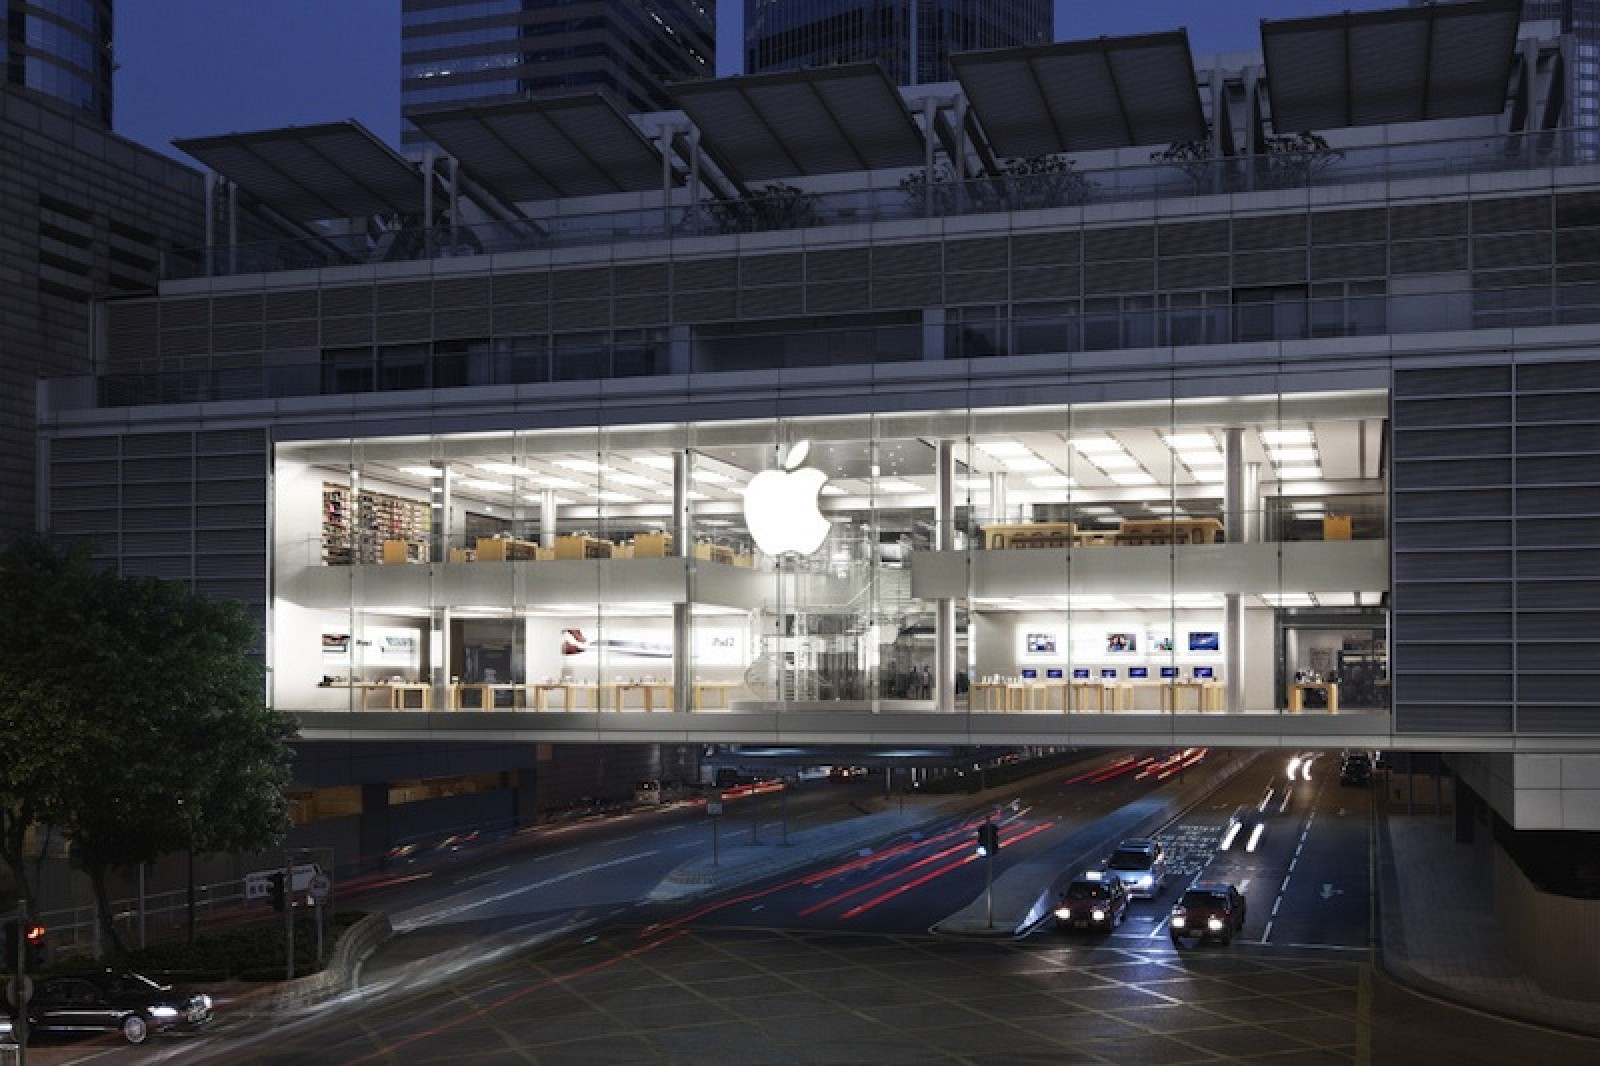 Information about products not manufactured by Apple, or independent websites not controlled or tested by Apple, is provided without recommendation or endorsement.